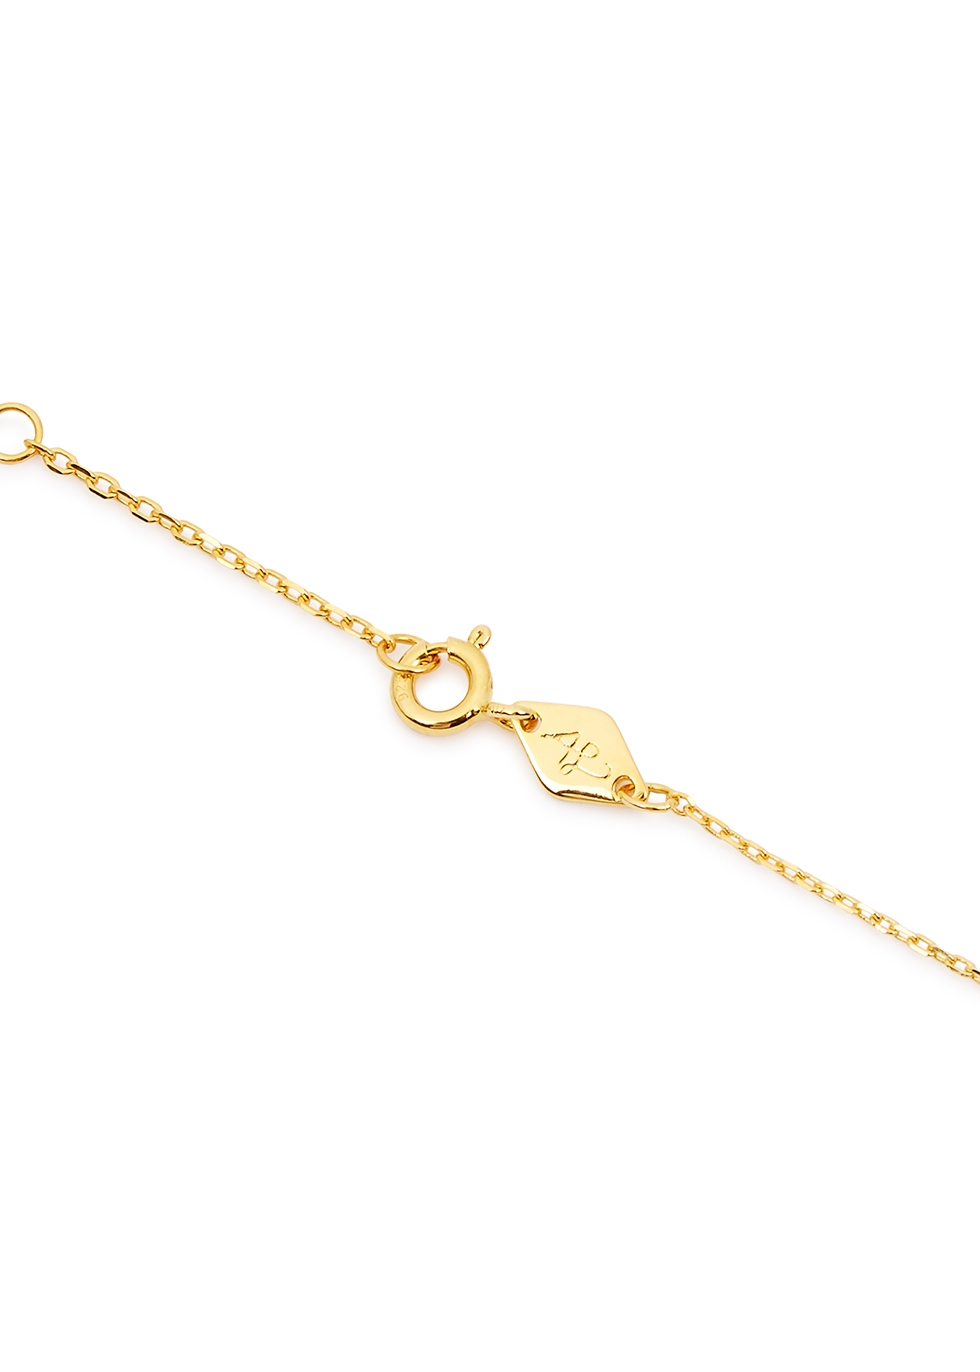 Baroque 18kt gold-plated necklace - ANNI LU